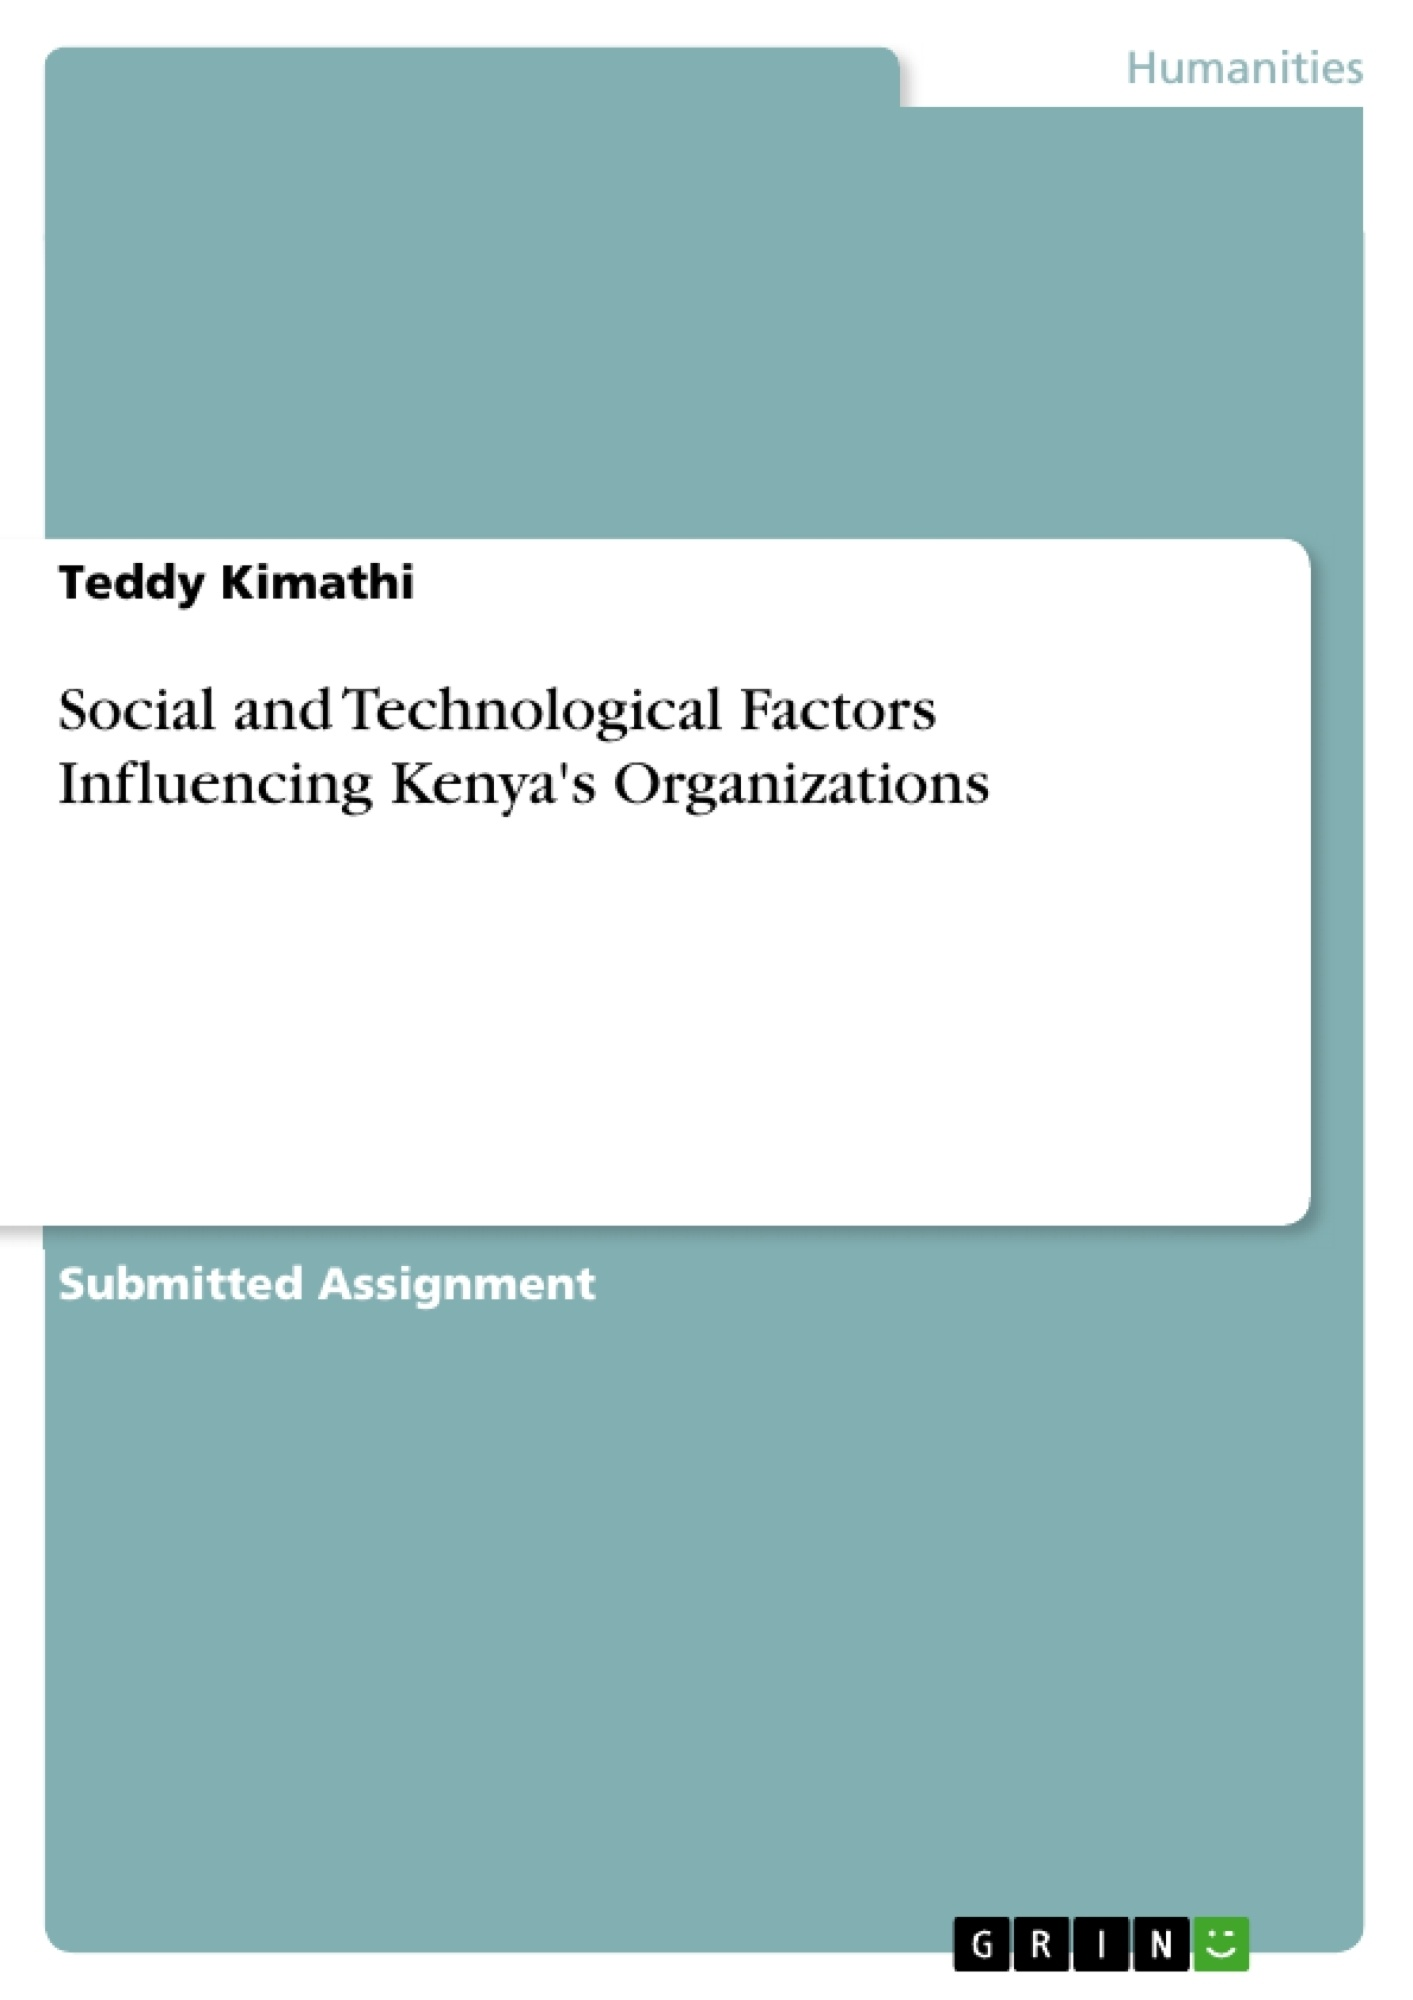 Title: Social and Technological Factors Influencing Kenya's Organizations